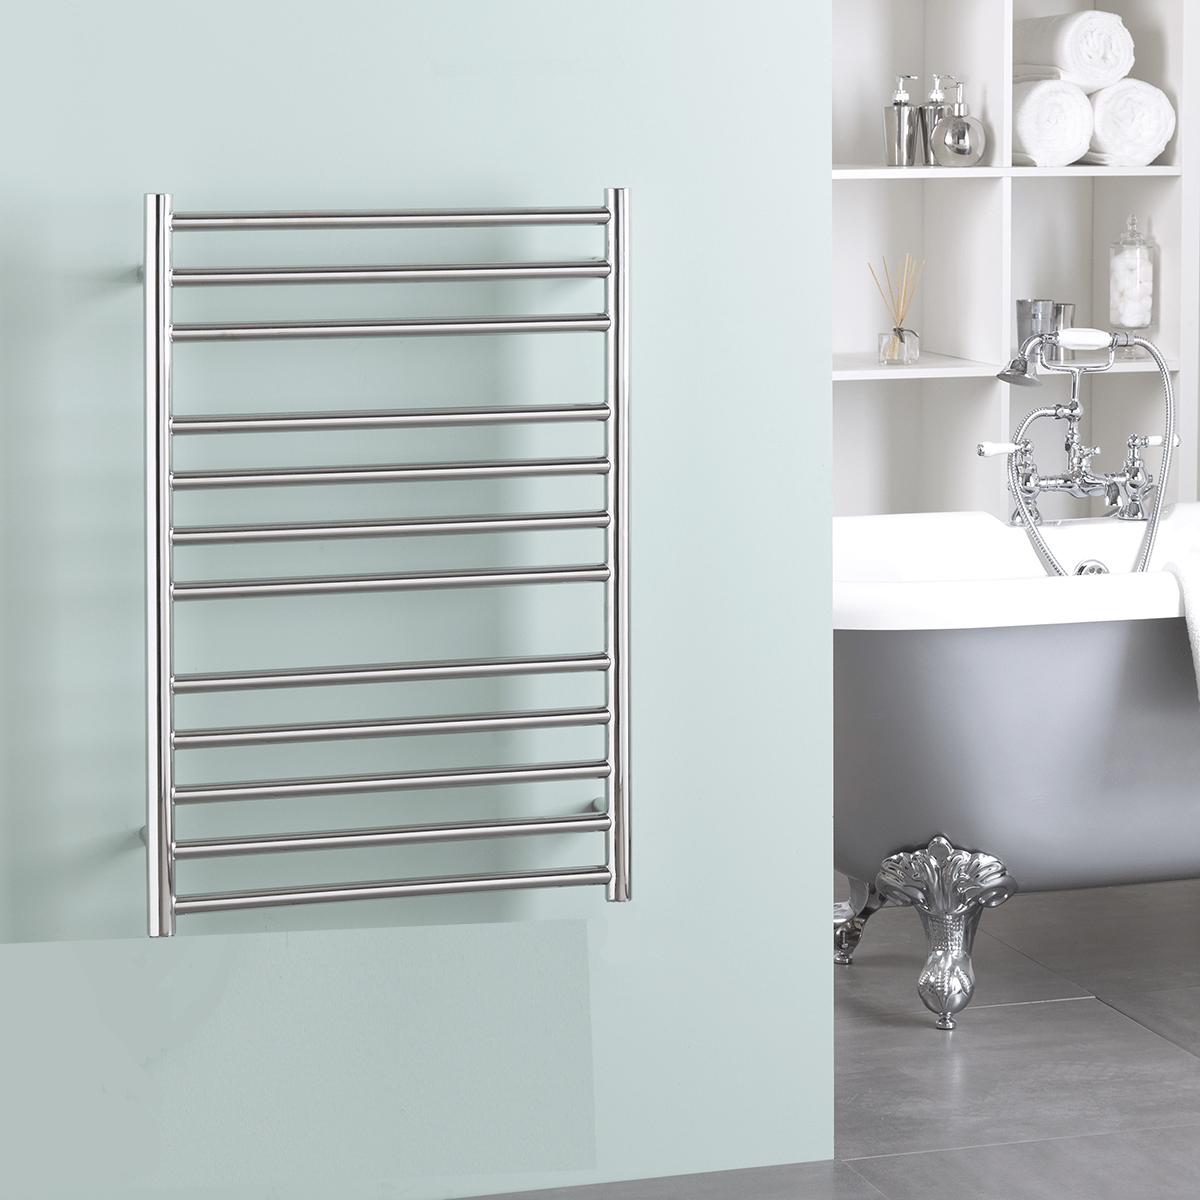 BRADDAN Stainless Steel Modern Heated Towel Rail / Warmer / Radiator – ELECTRIC + Wireless Timer, Thermostat BUY ONLINE